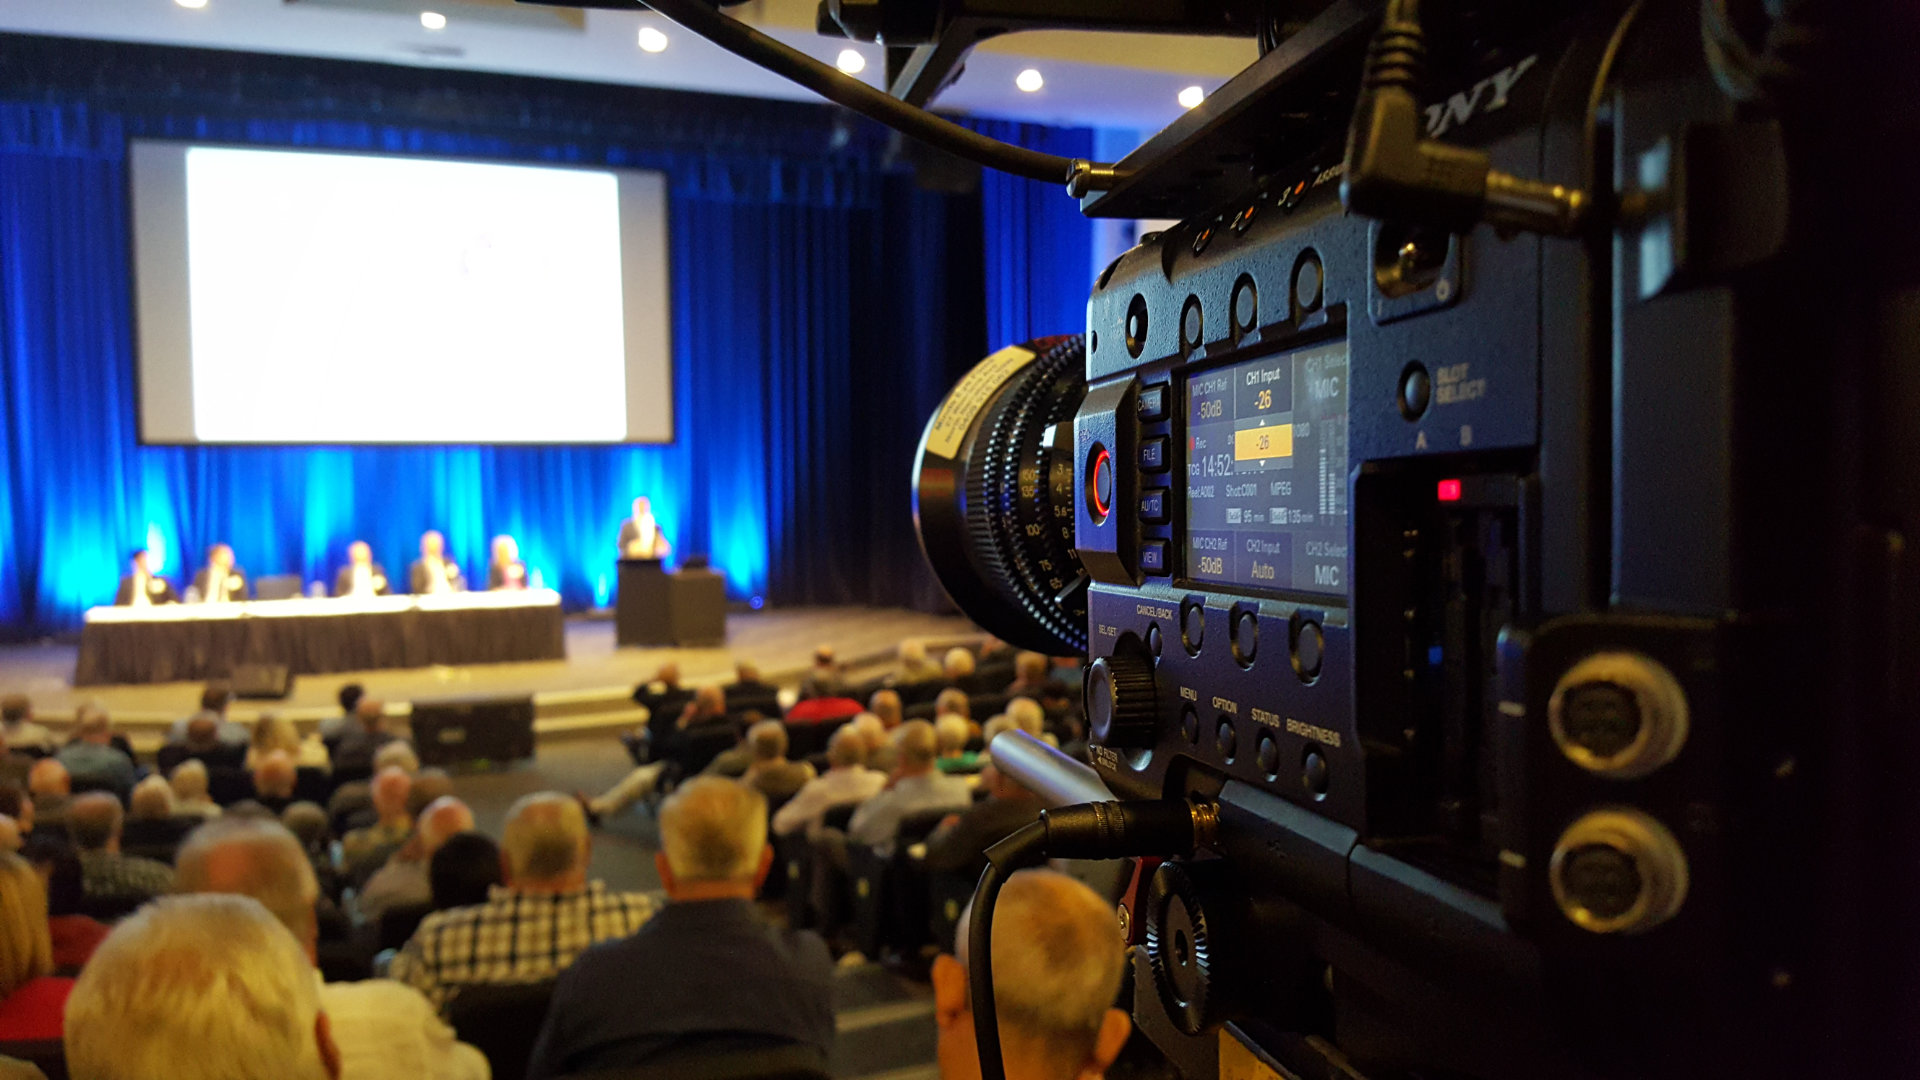 Sydney freelance cameraman DP working shooting video conference